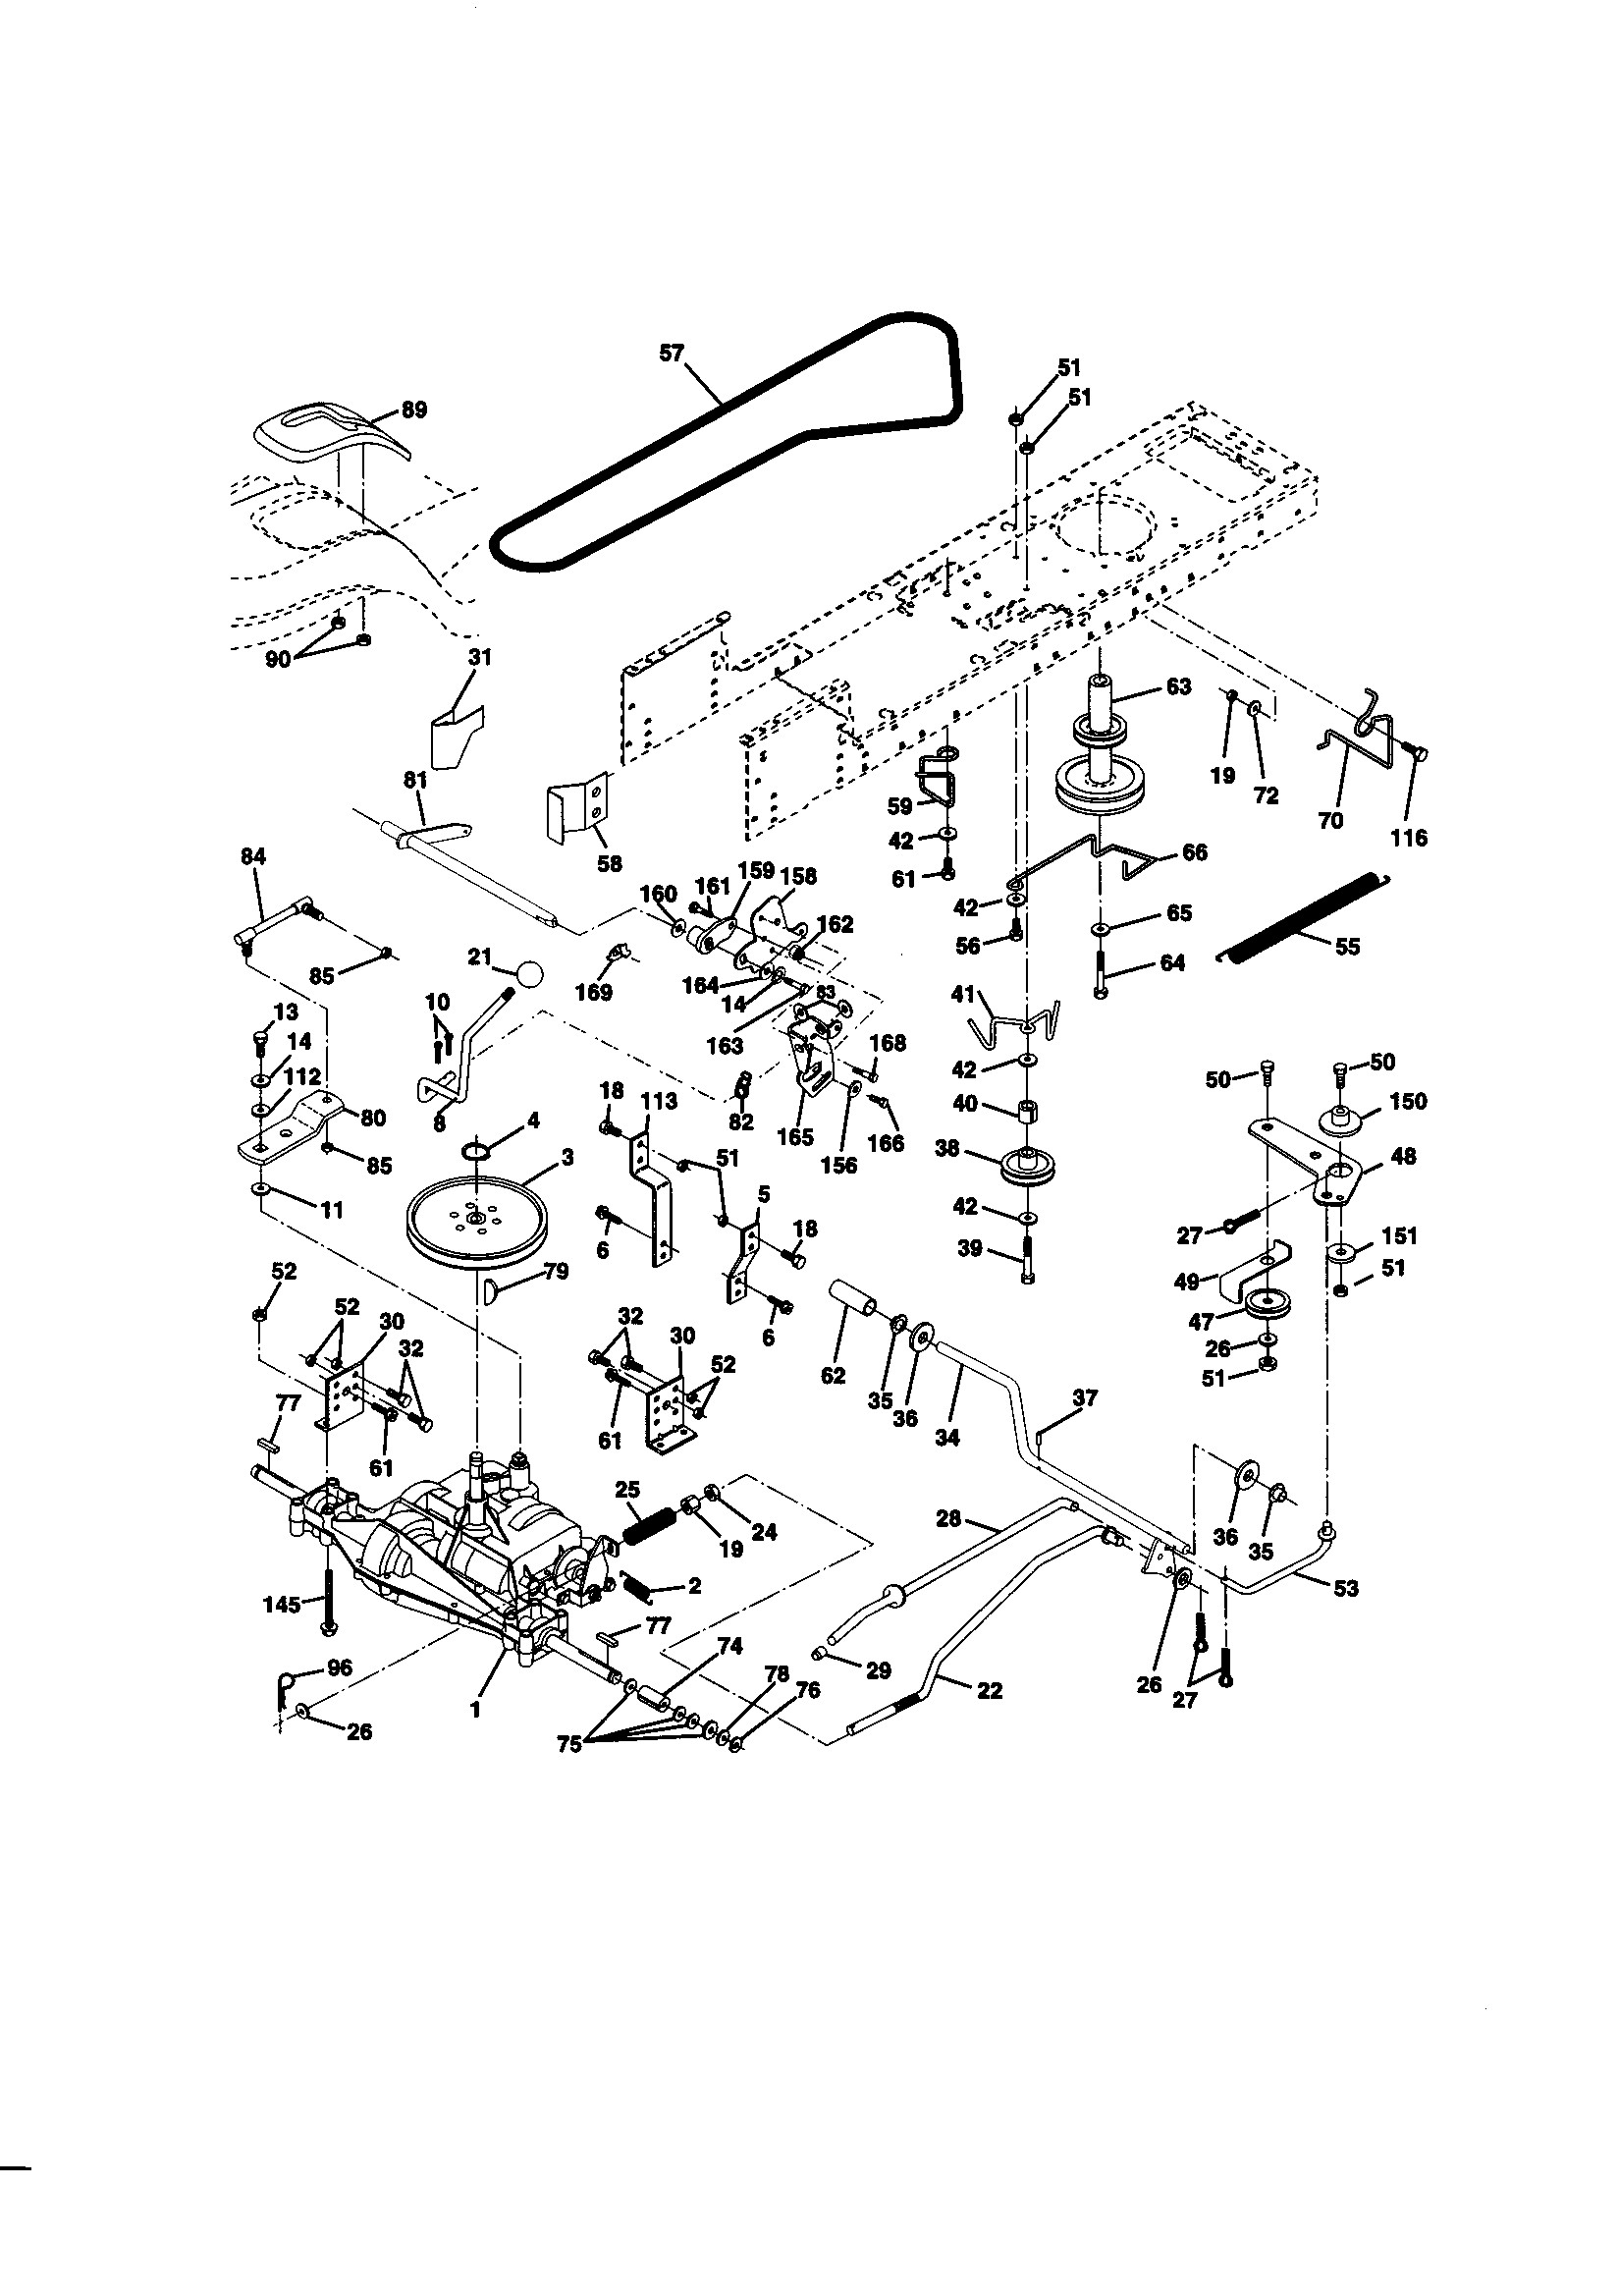 Craftsman Lawn Mower Engine Parts Diagram Craftsman 19 5 Hp Electric Start 42 Lawn Tractor Parts Of Craftsman Lawn Mower Engine Parts Diagram